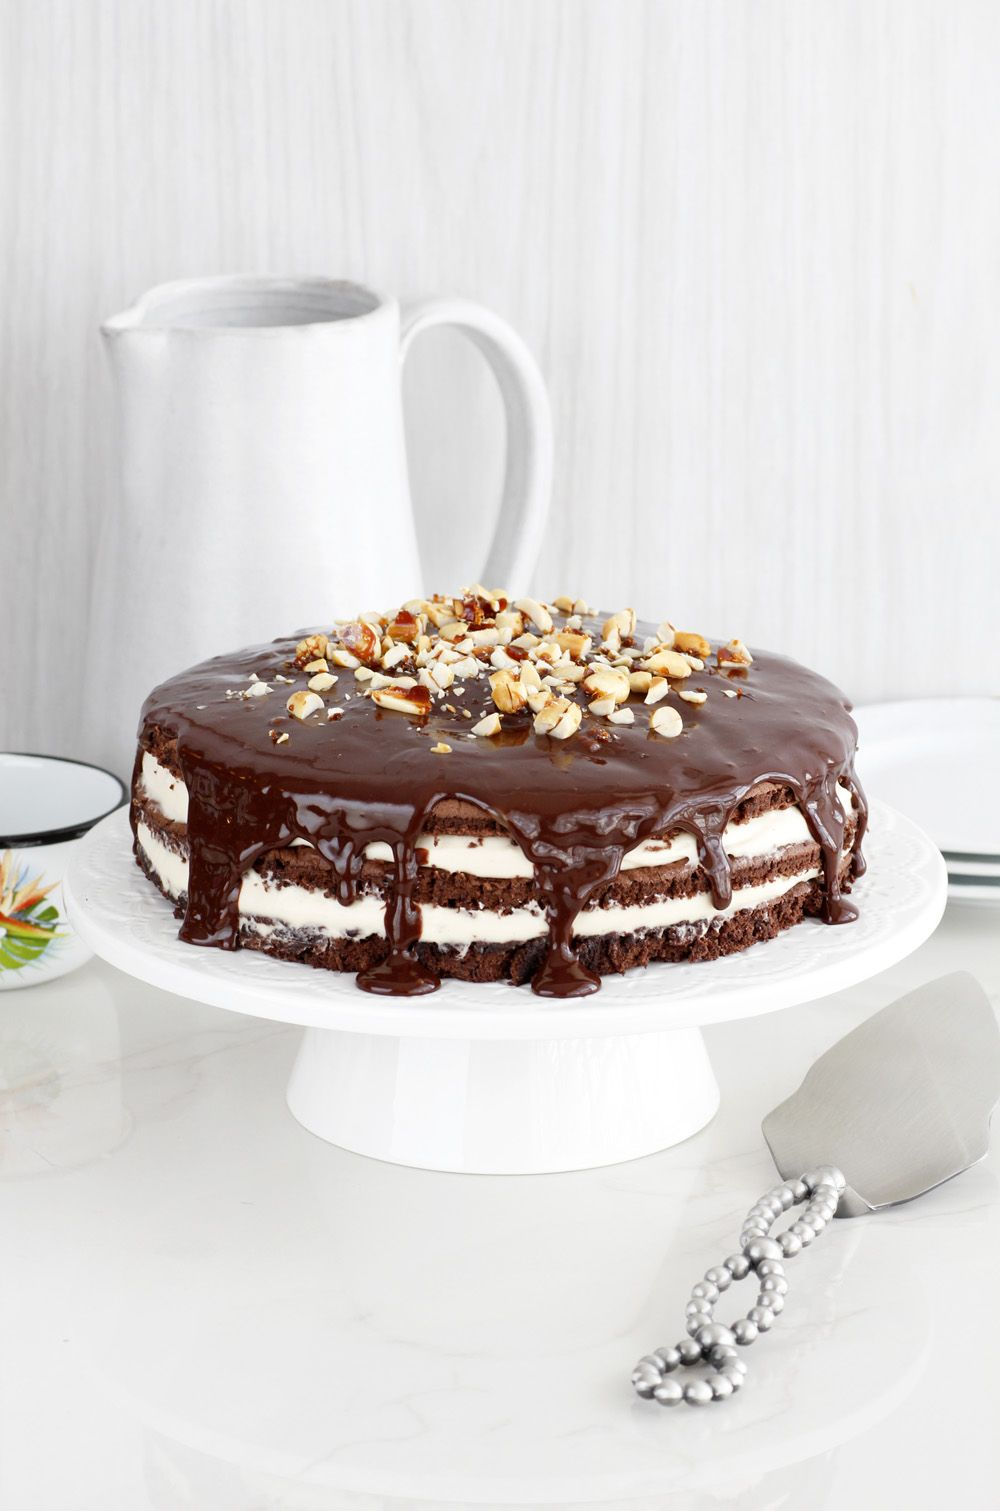 Gluten Free Chocolate Layer Cake with Peanut Butter Cream